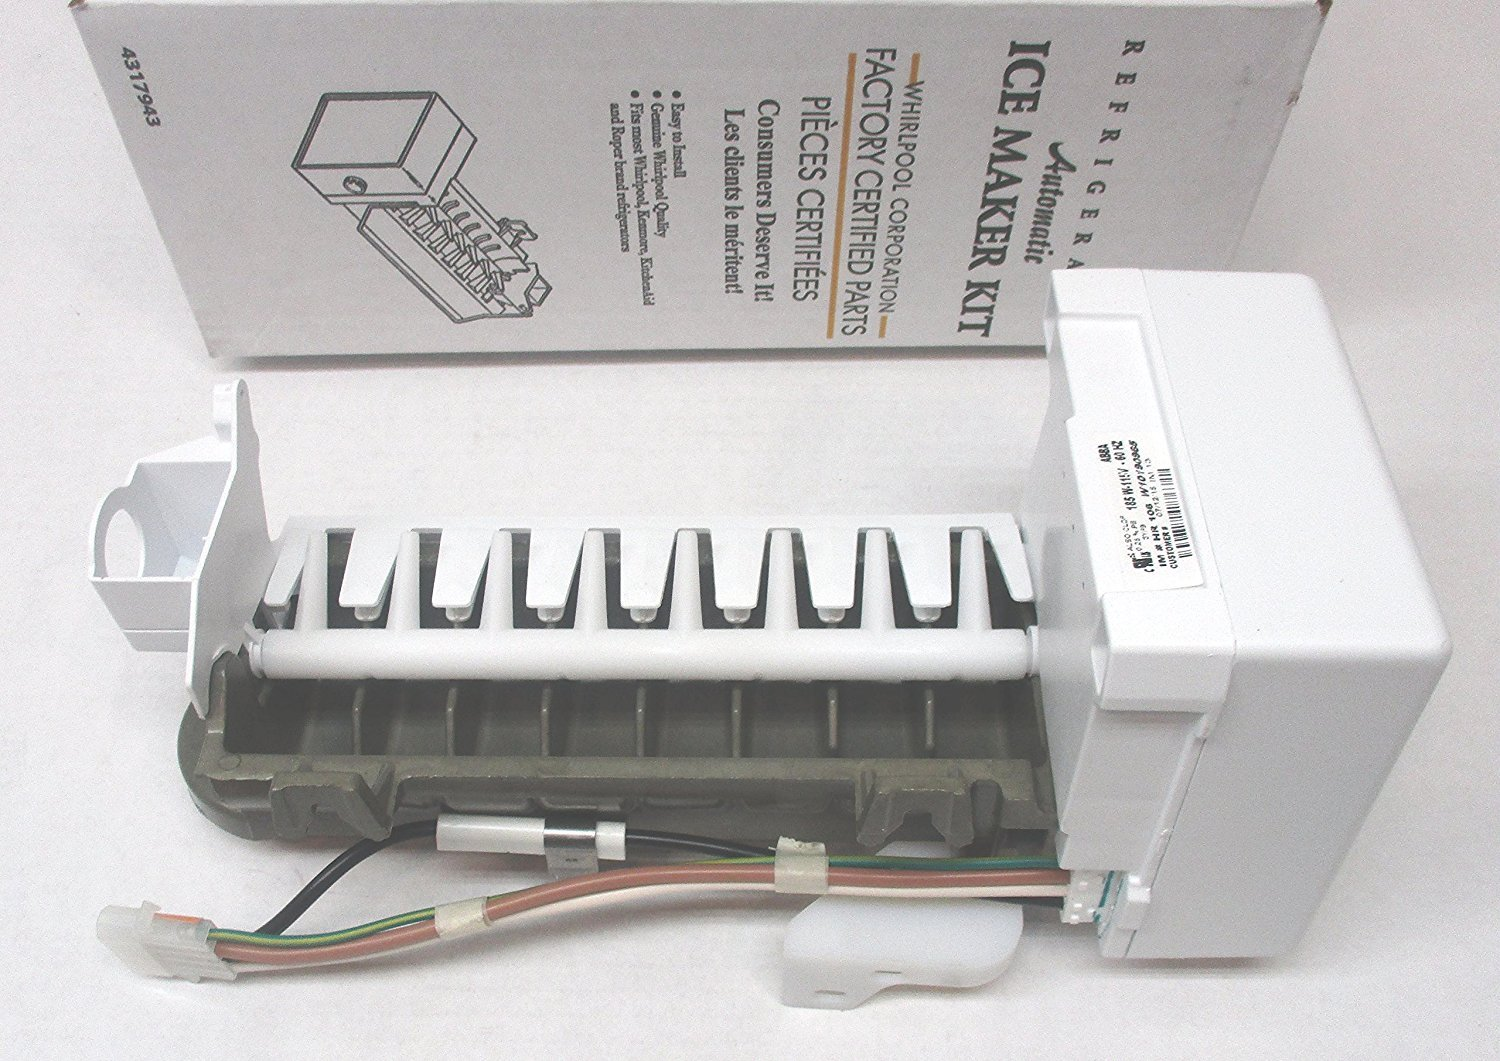 OEM FACTORY ORIGINAL GENUINE FSP WHIRLPOOL KENMORE MAYTAG ICE MAKER KIT (Replaces these part #